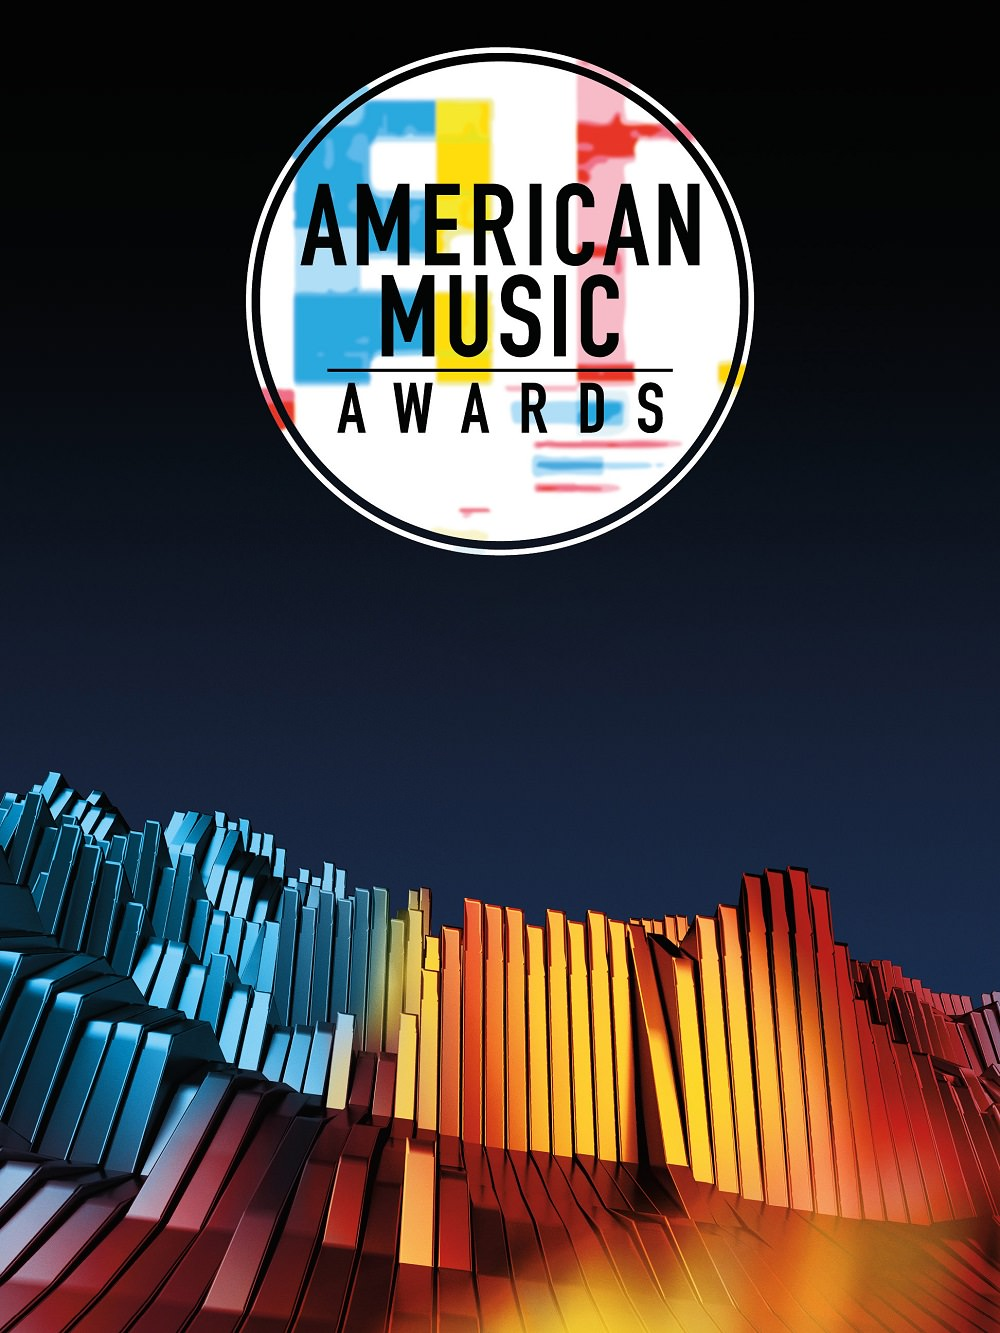 American Music Awards 2016